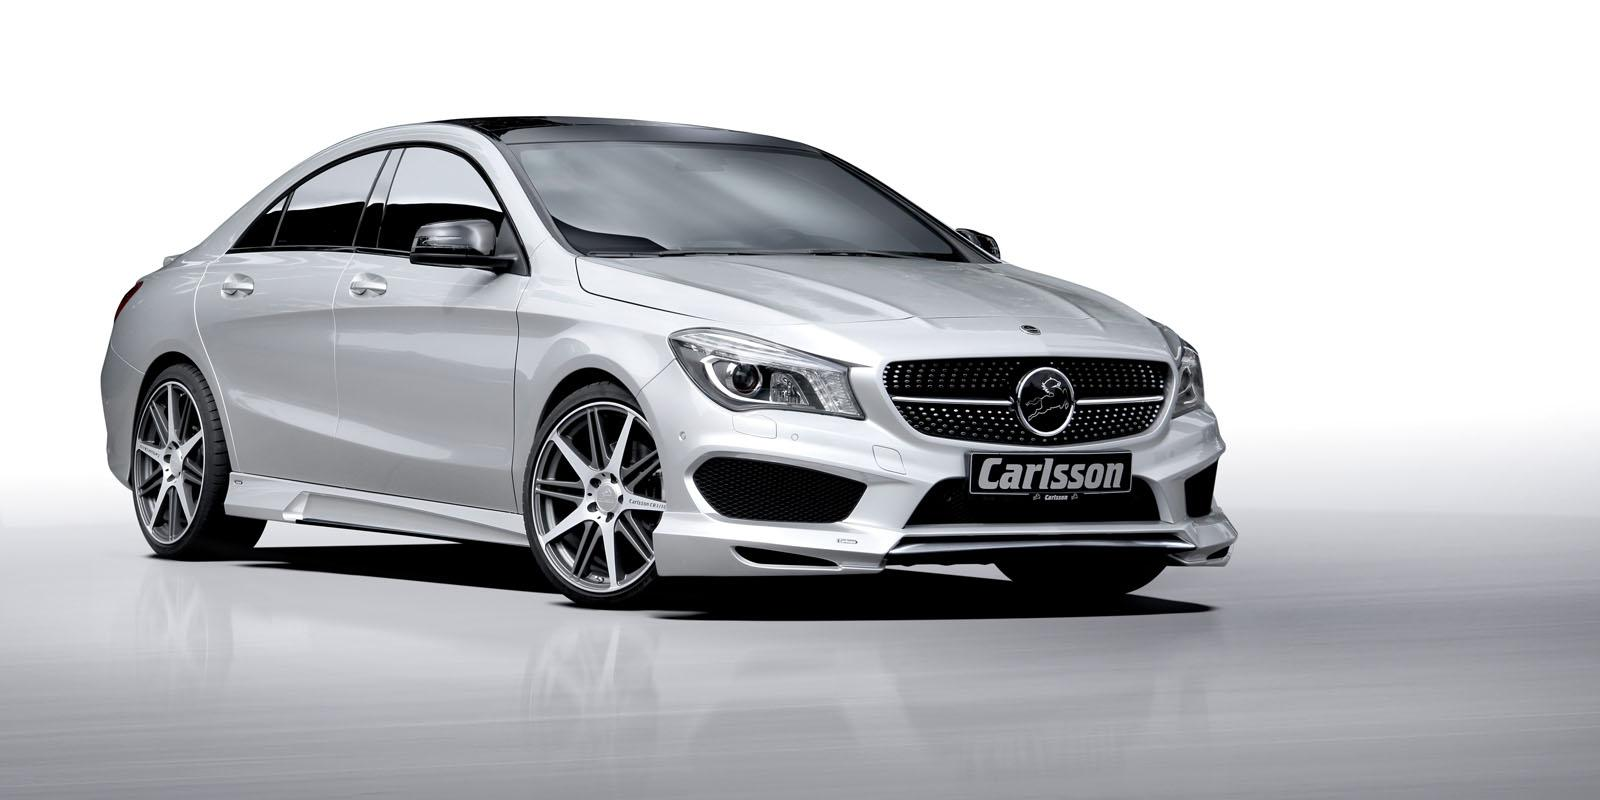 450 Hp For The CLA 45 AMG Courtesy Of Carlsson